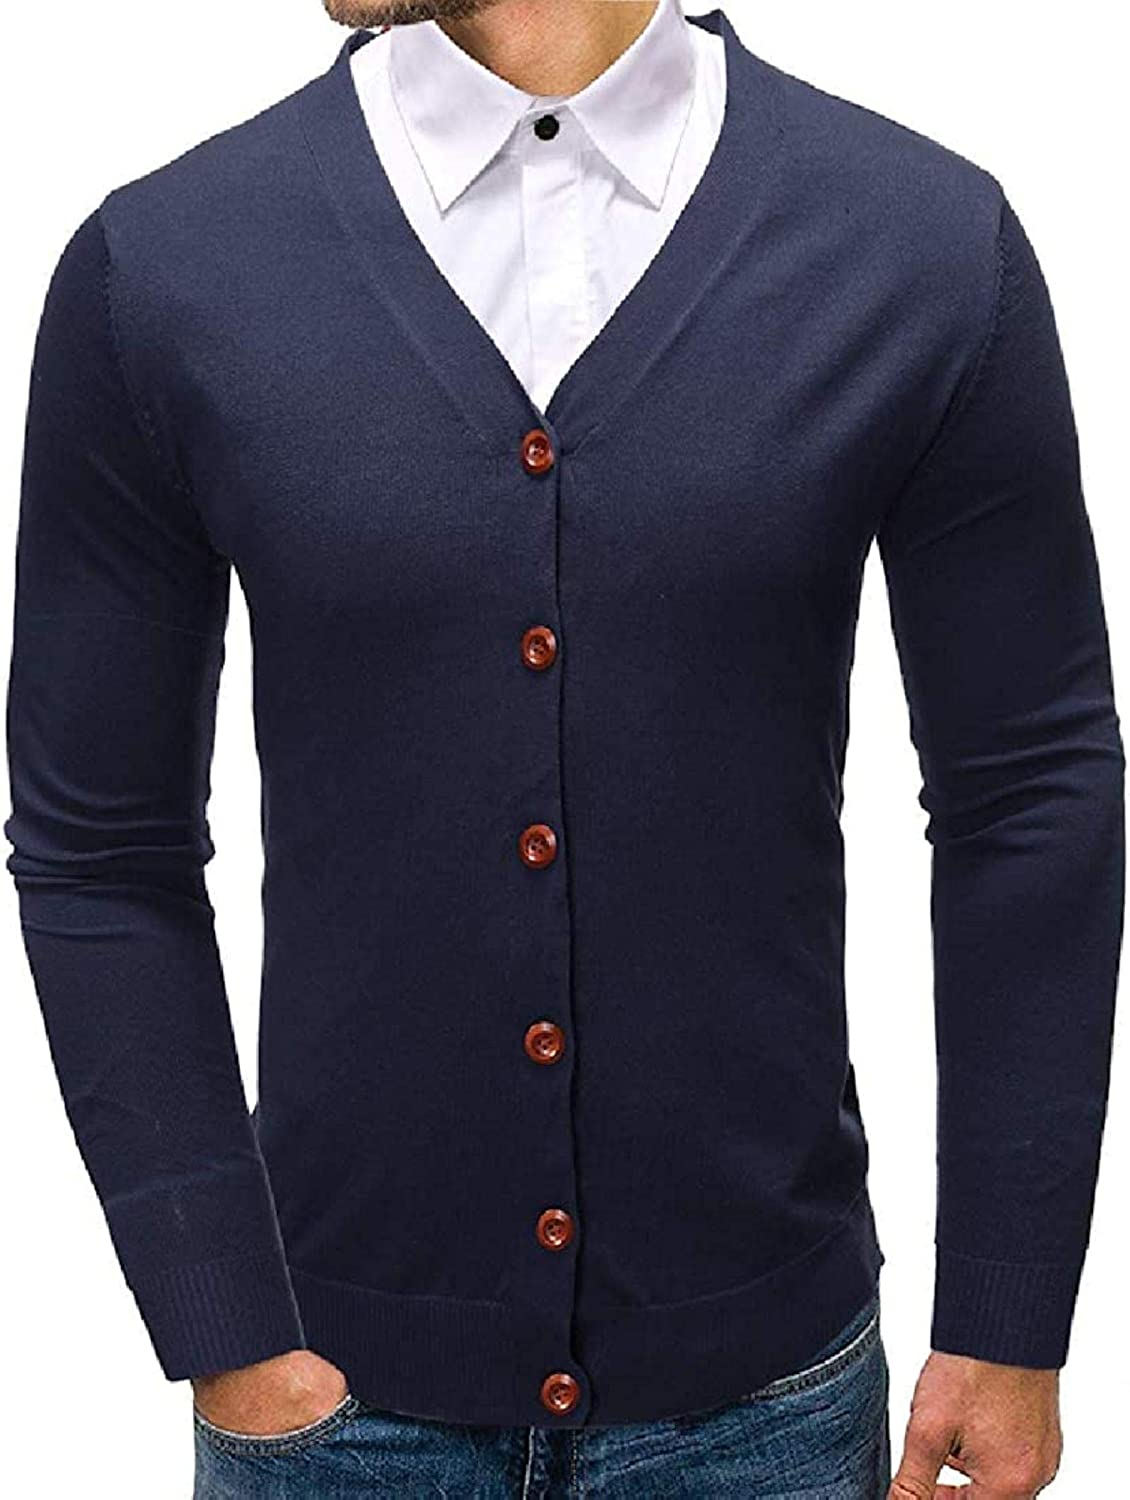 Men Button Down Classic V Neck Plain Slim Fit Knitted Cardigan Sweater,Navy,X-Large